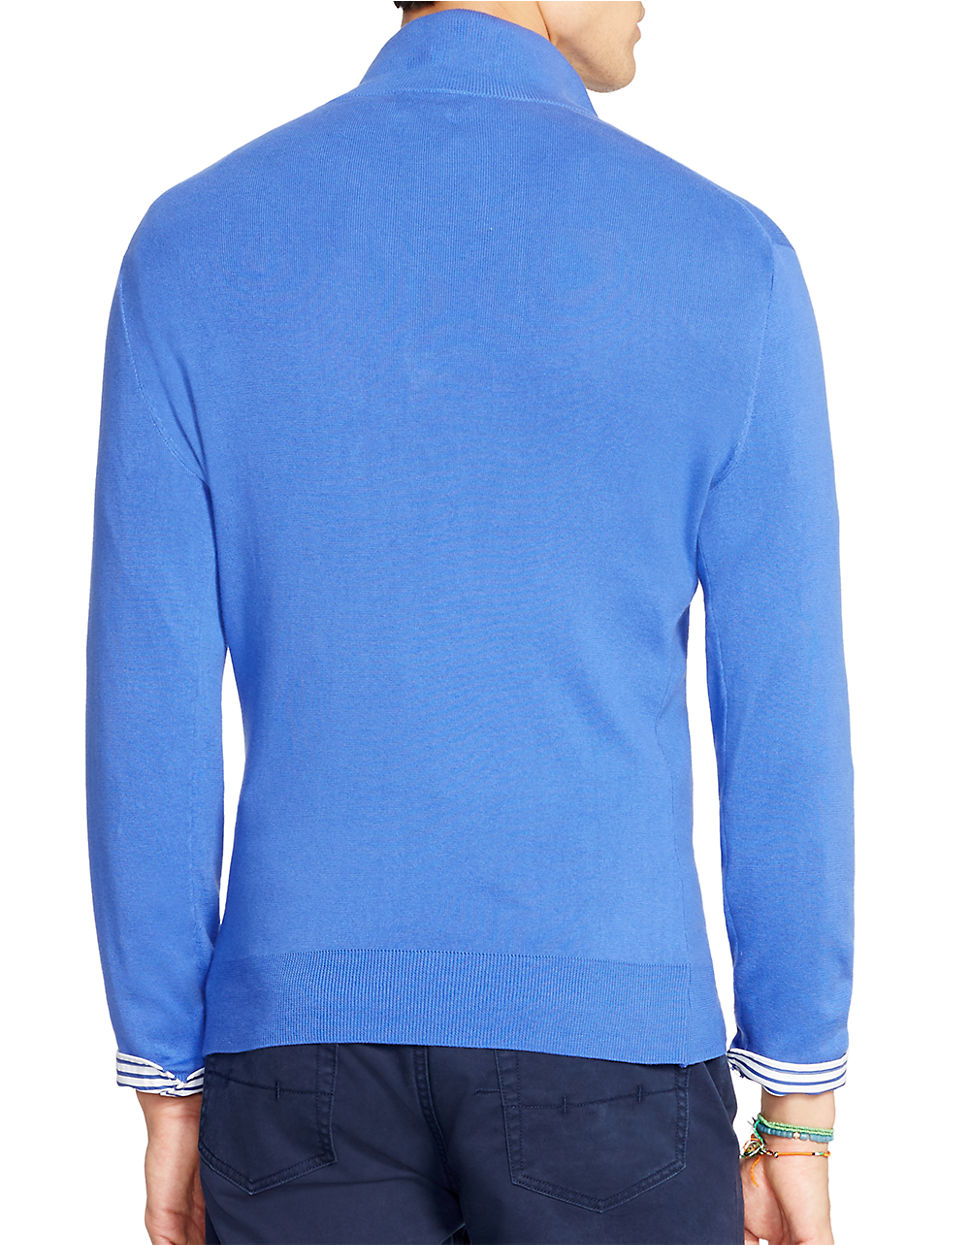 Lacoste Pima Jersey 1 2 Zip Sweater Sweater Jeans And Boots